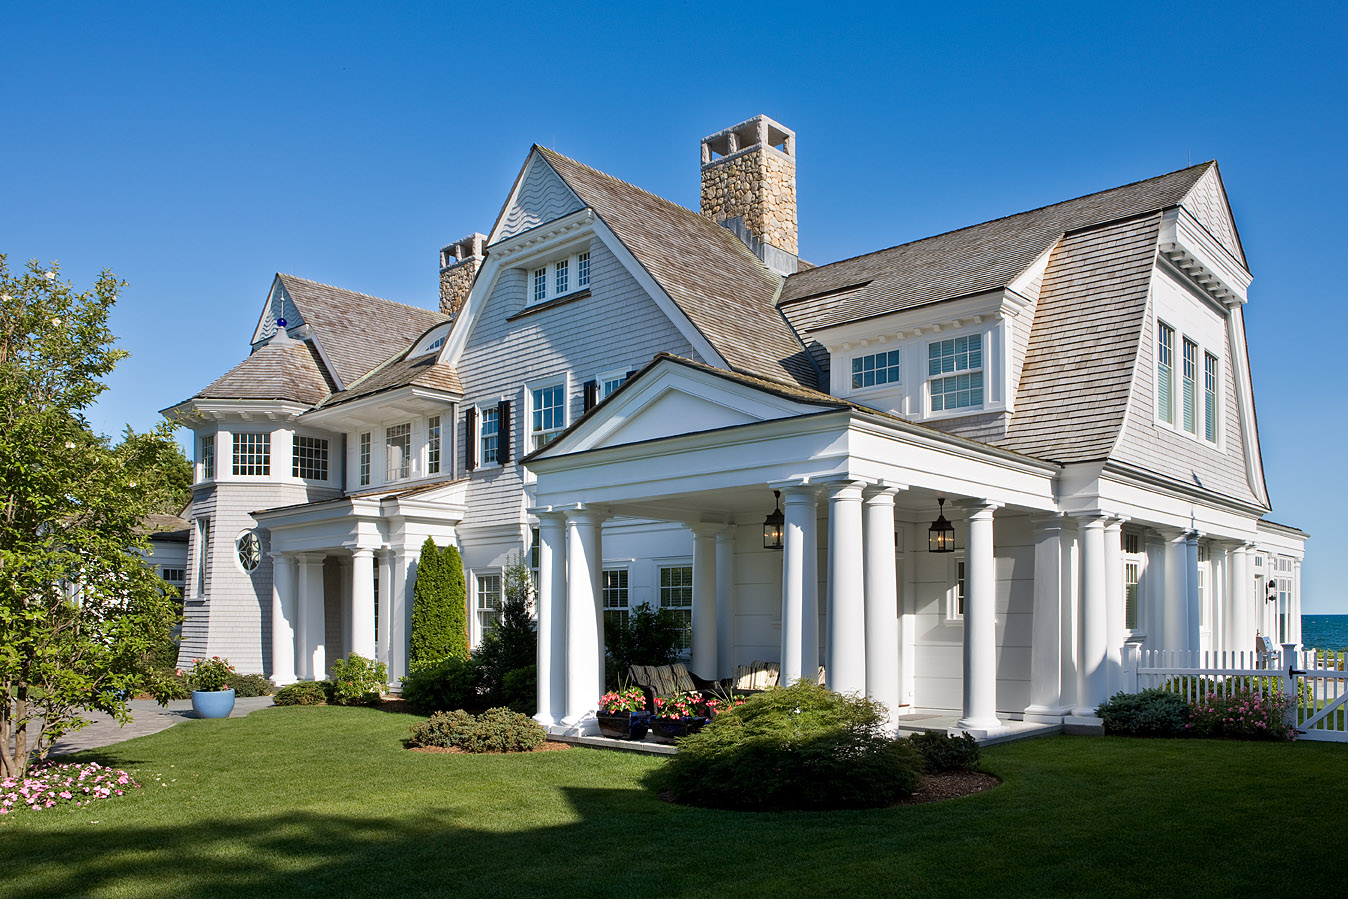 Willow decor a coastal dream by catalano architects for Shingle style home designs